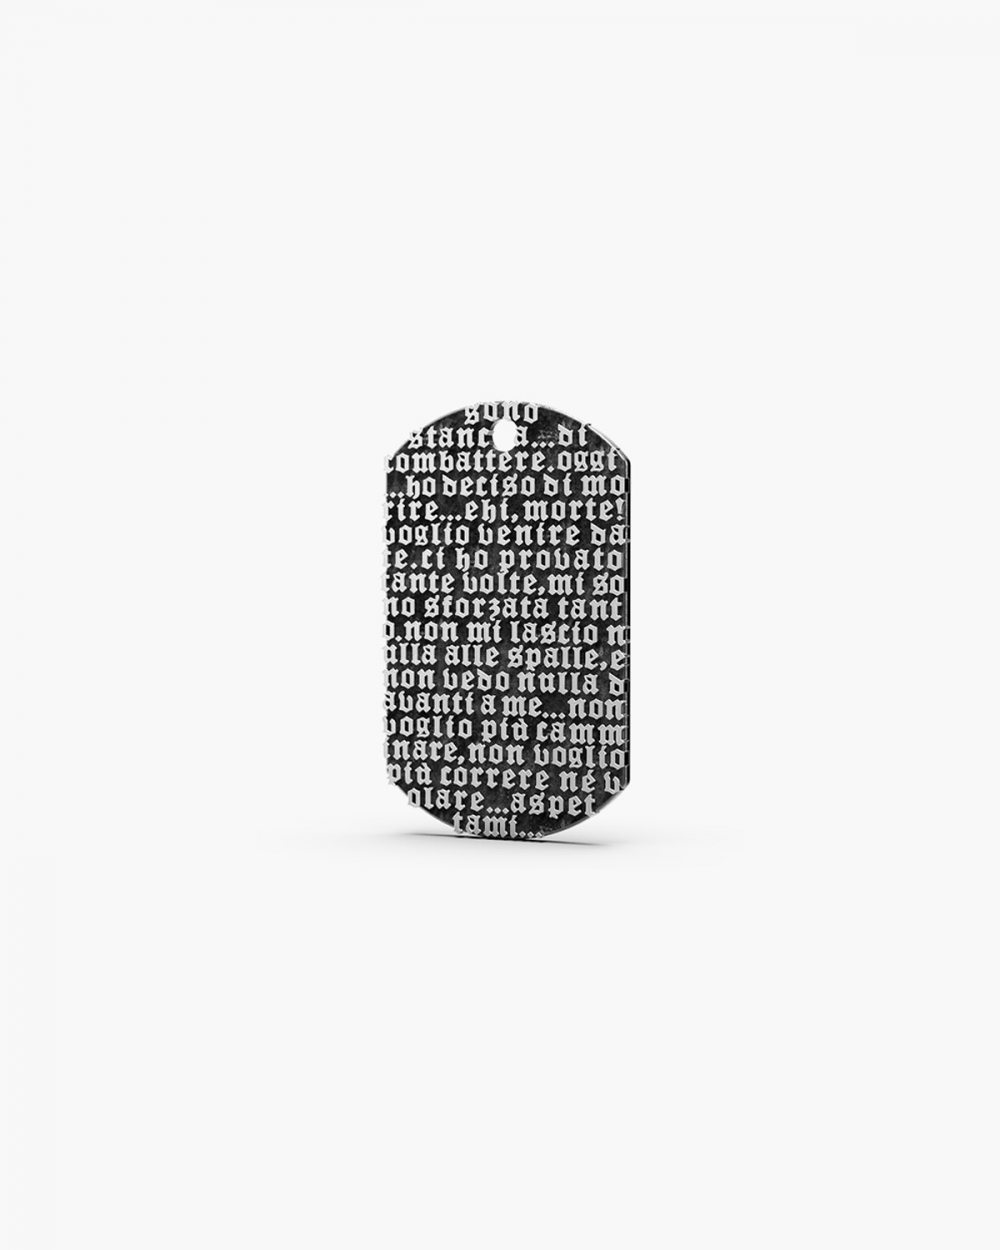 MYNOVE25 LYRICS ARMY DATA PENDANT NOVE25